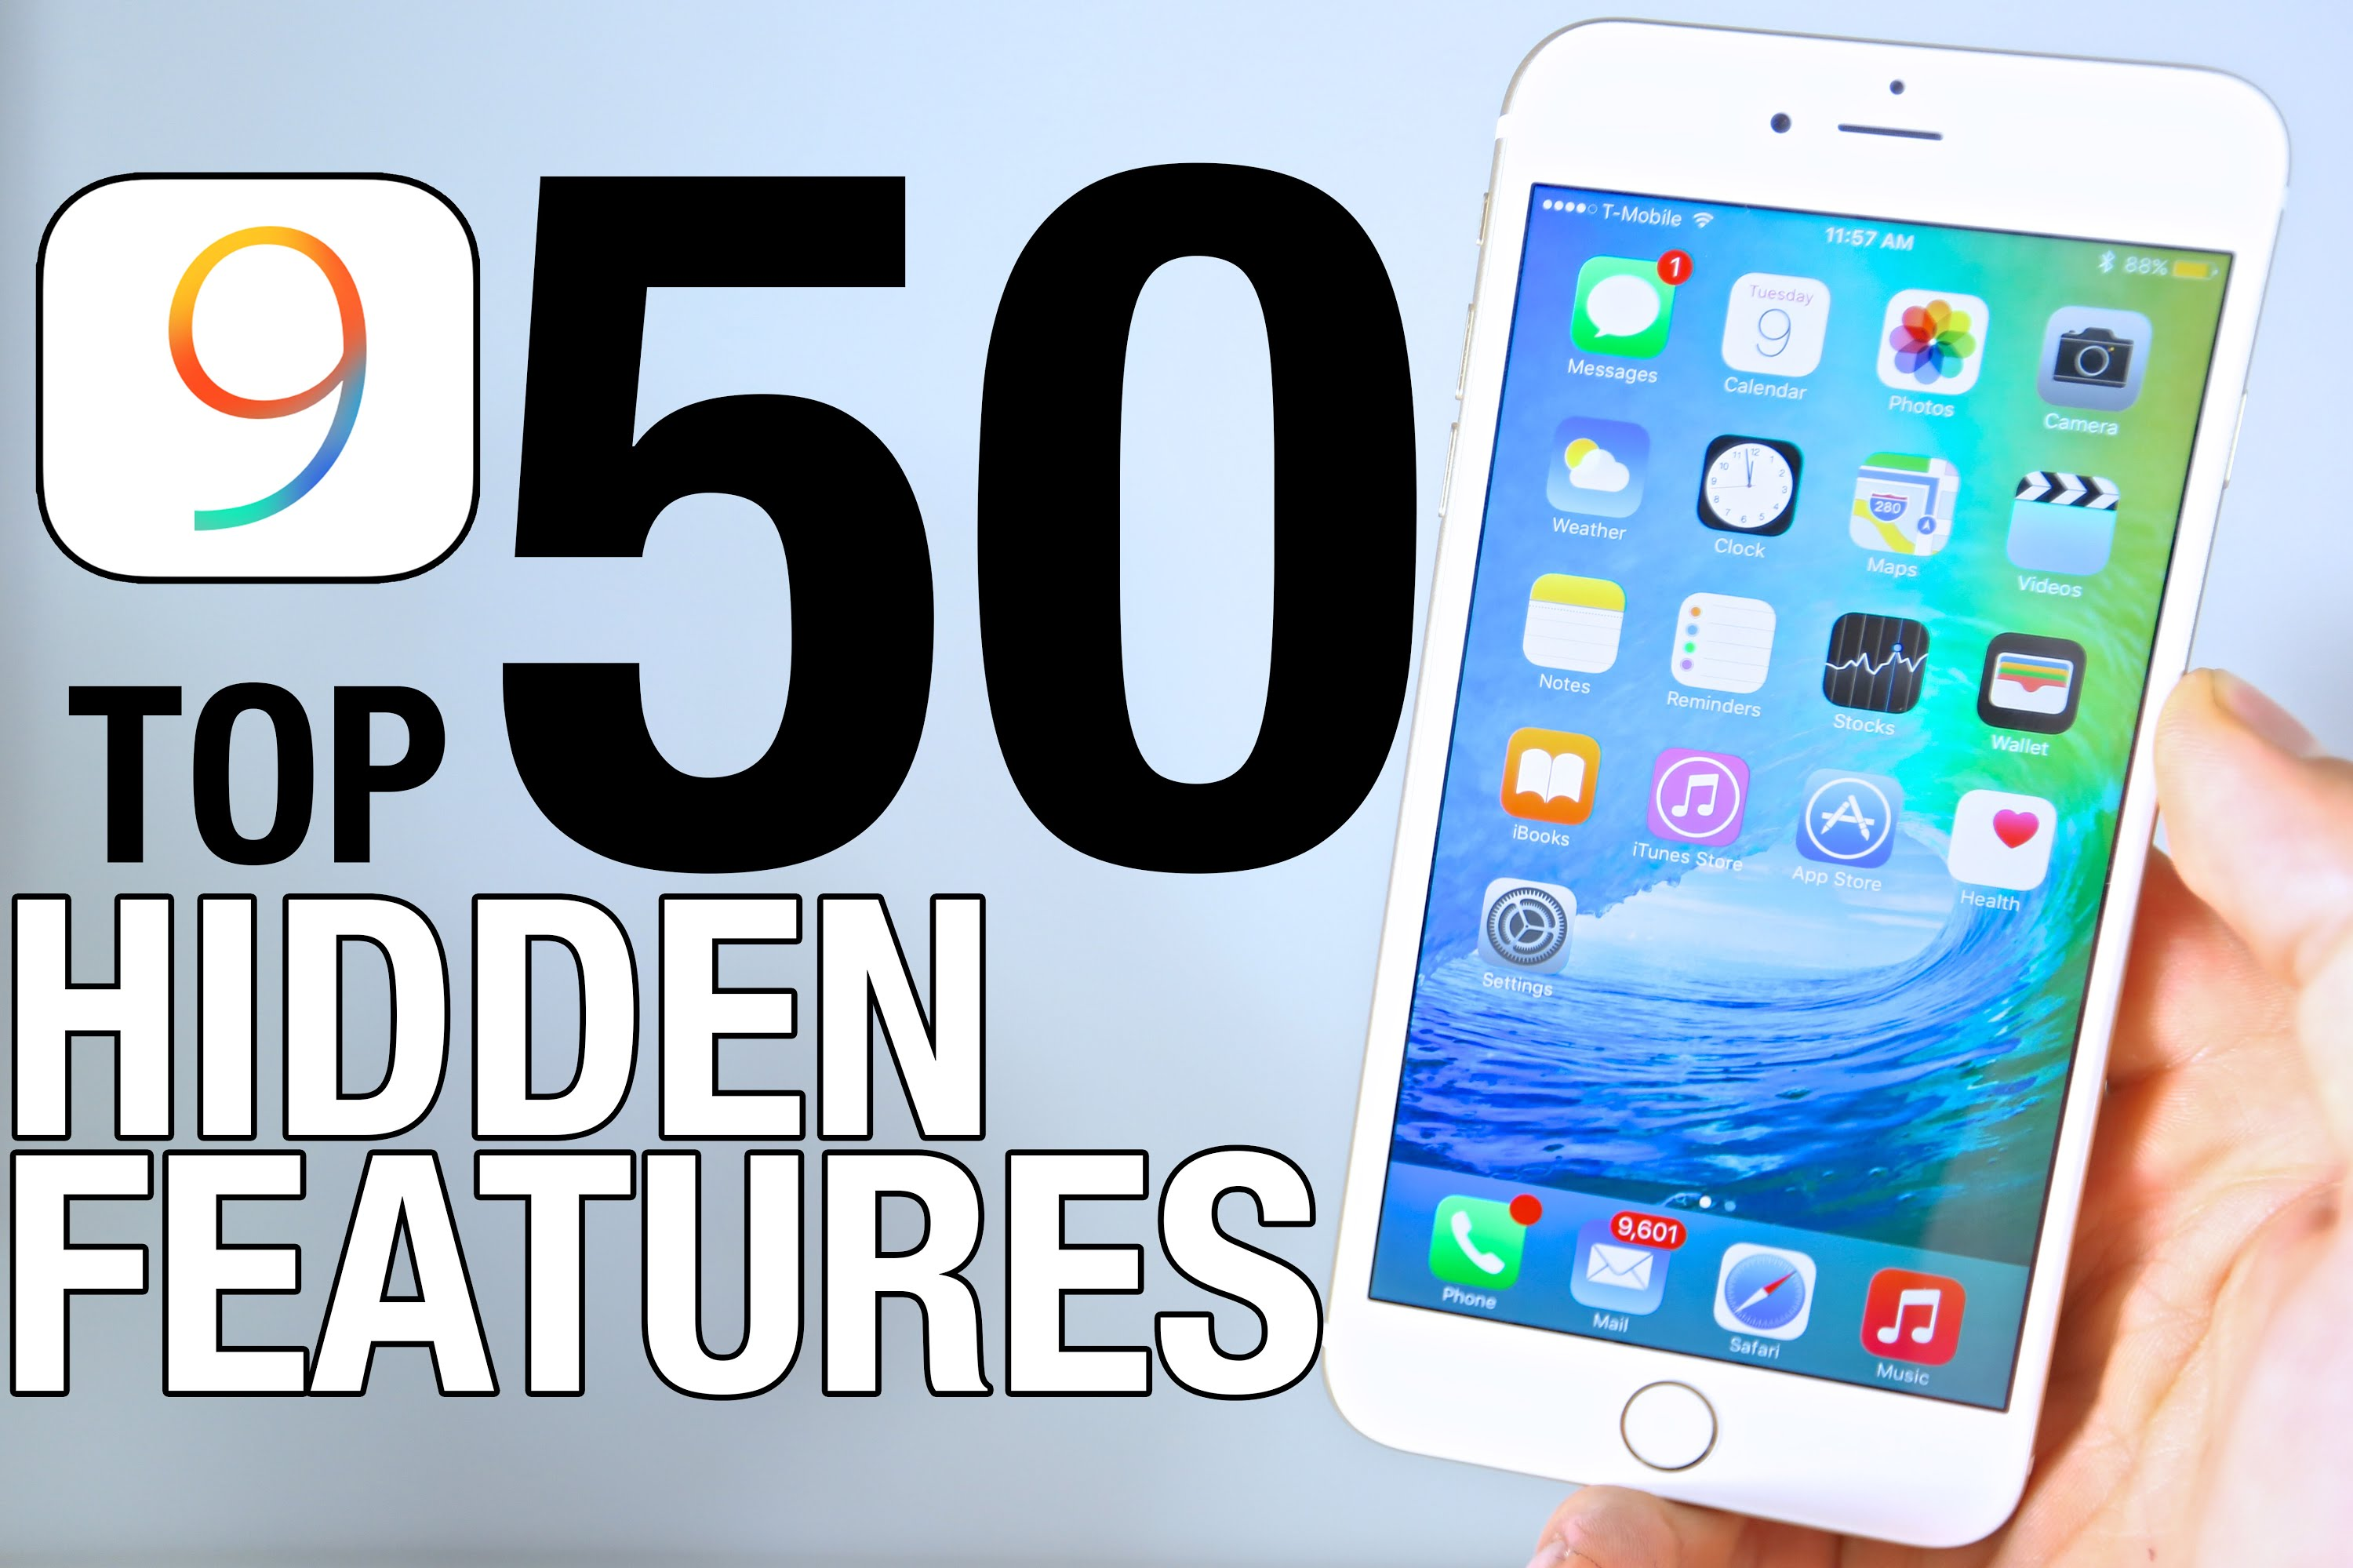 New iOS 9 features that are rocking our world